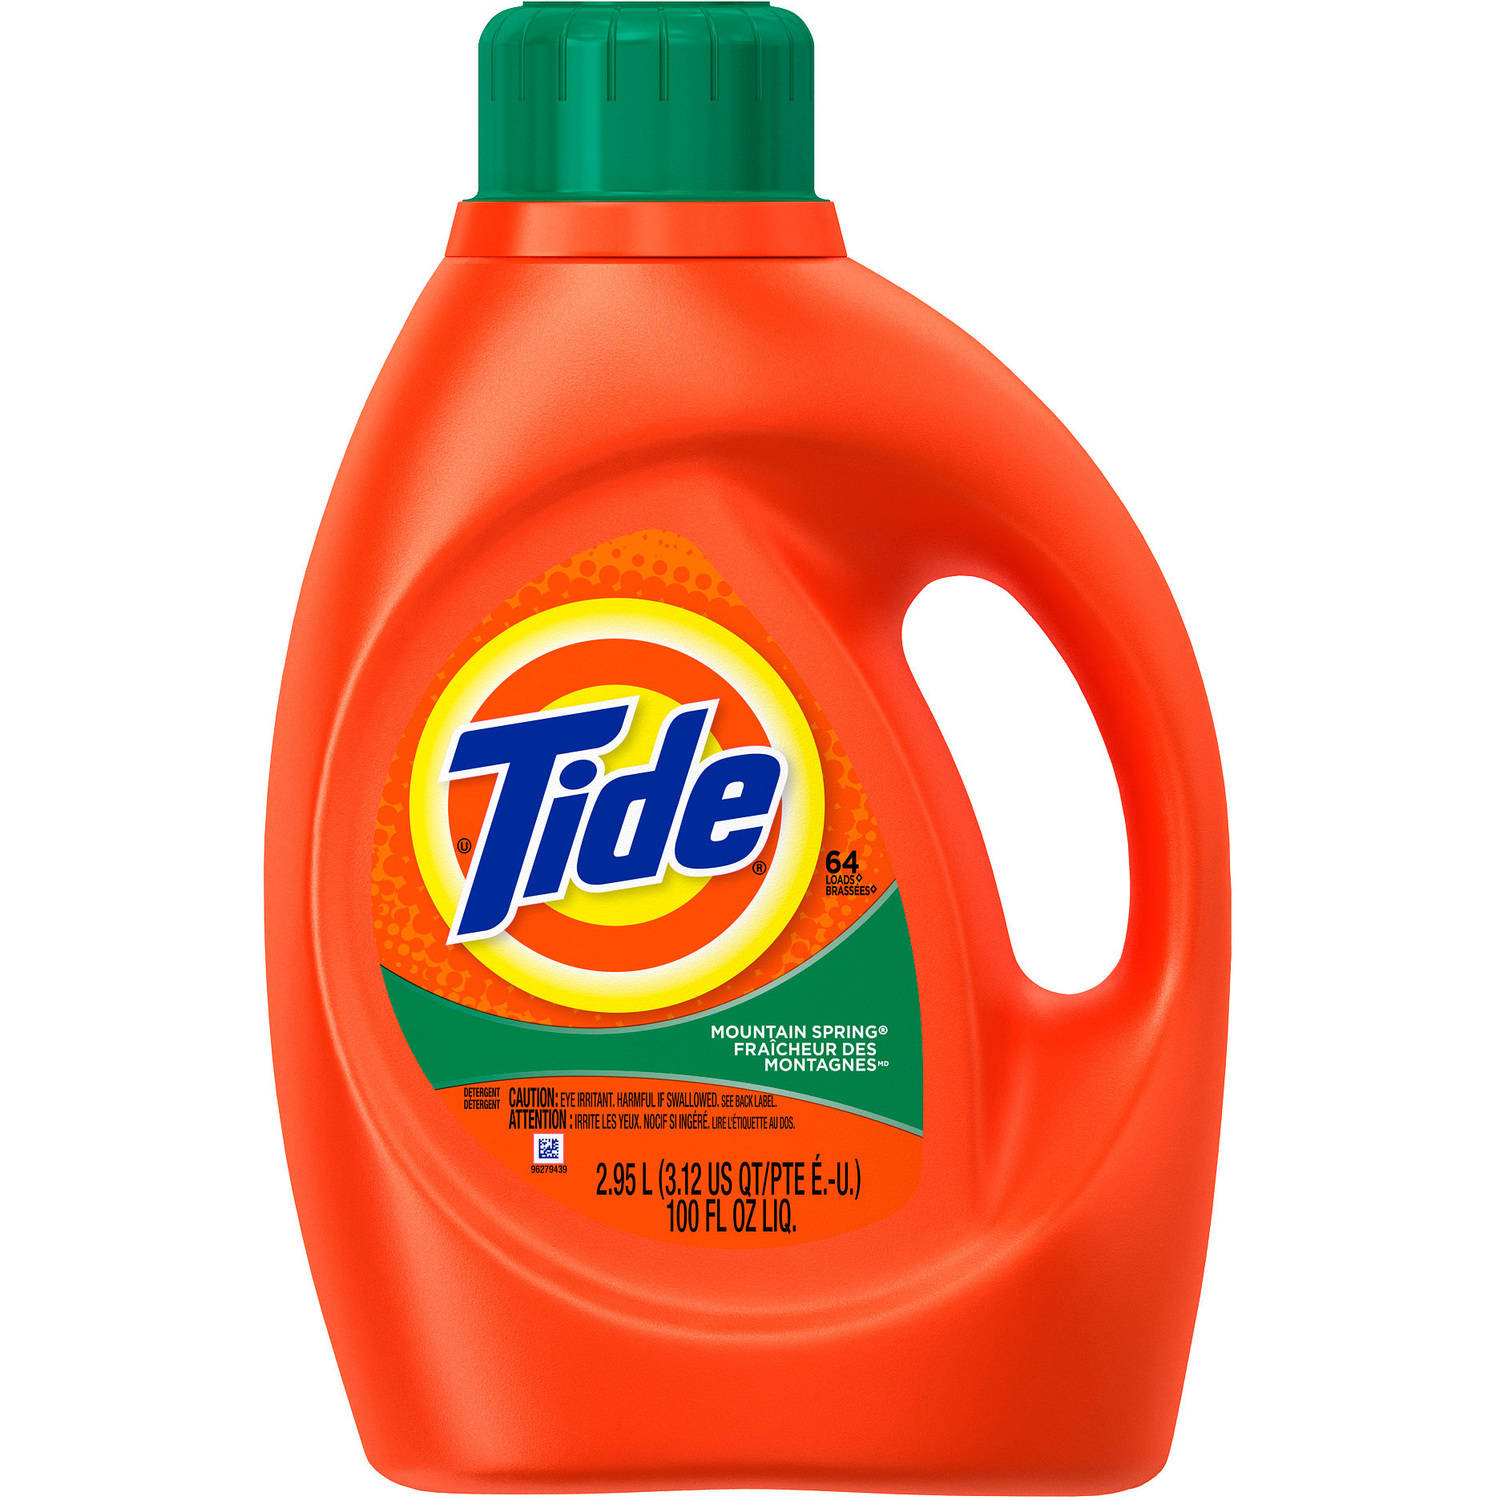 Tide Mountain Spring Scent Liquid Laundry Detergent, 64 Loads 100 oz